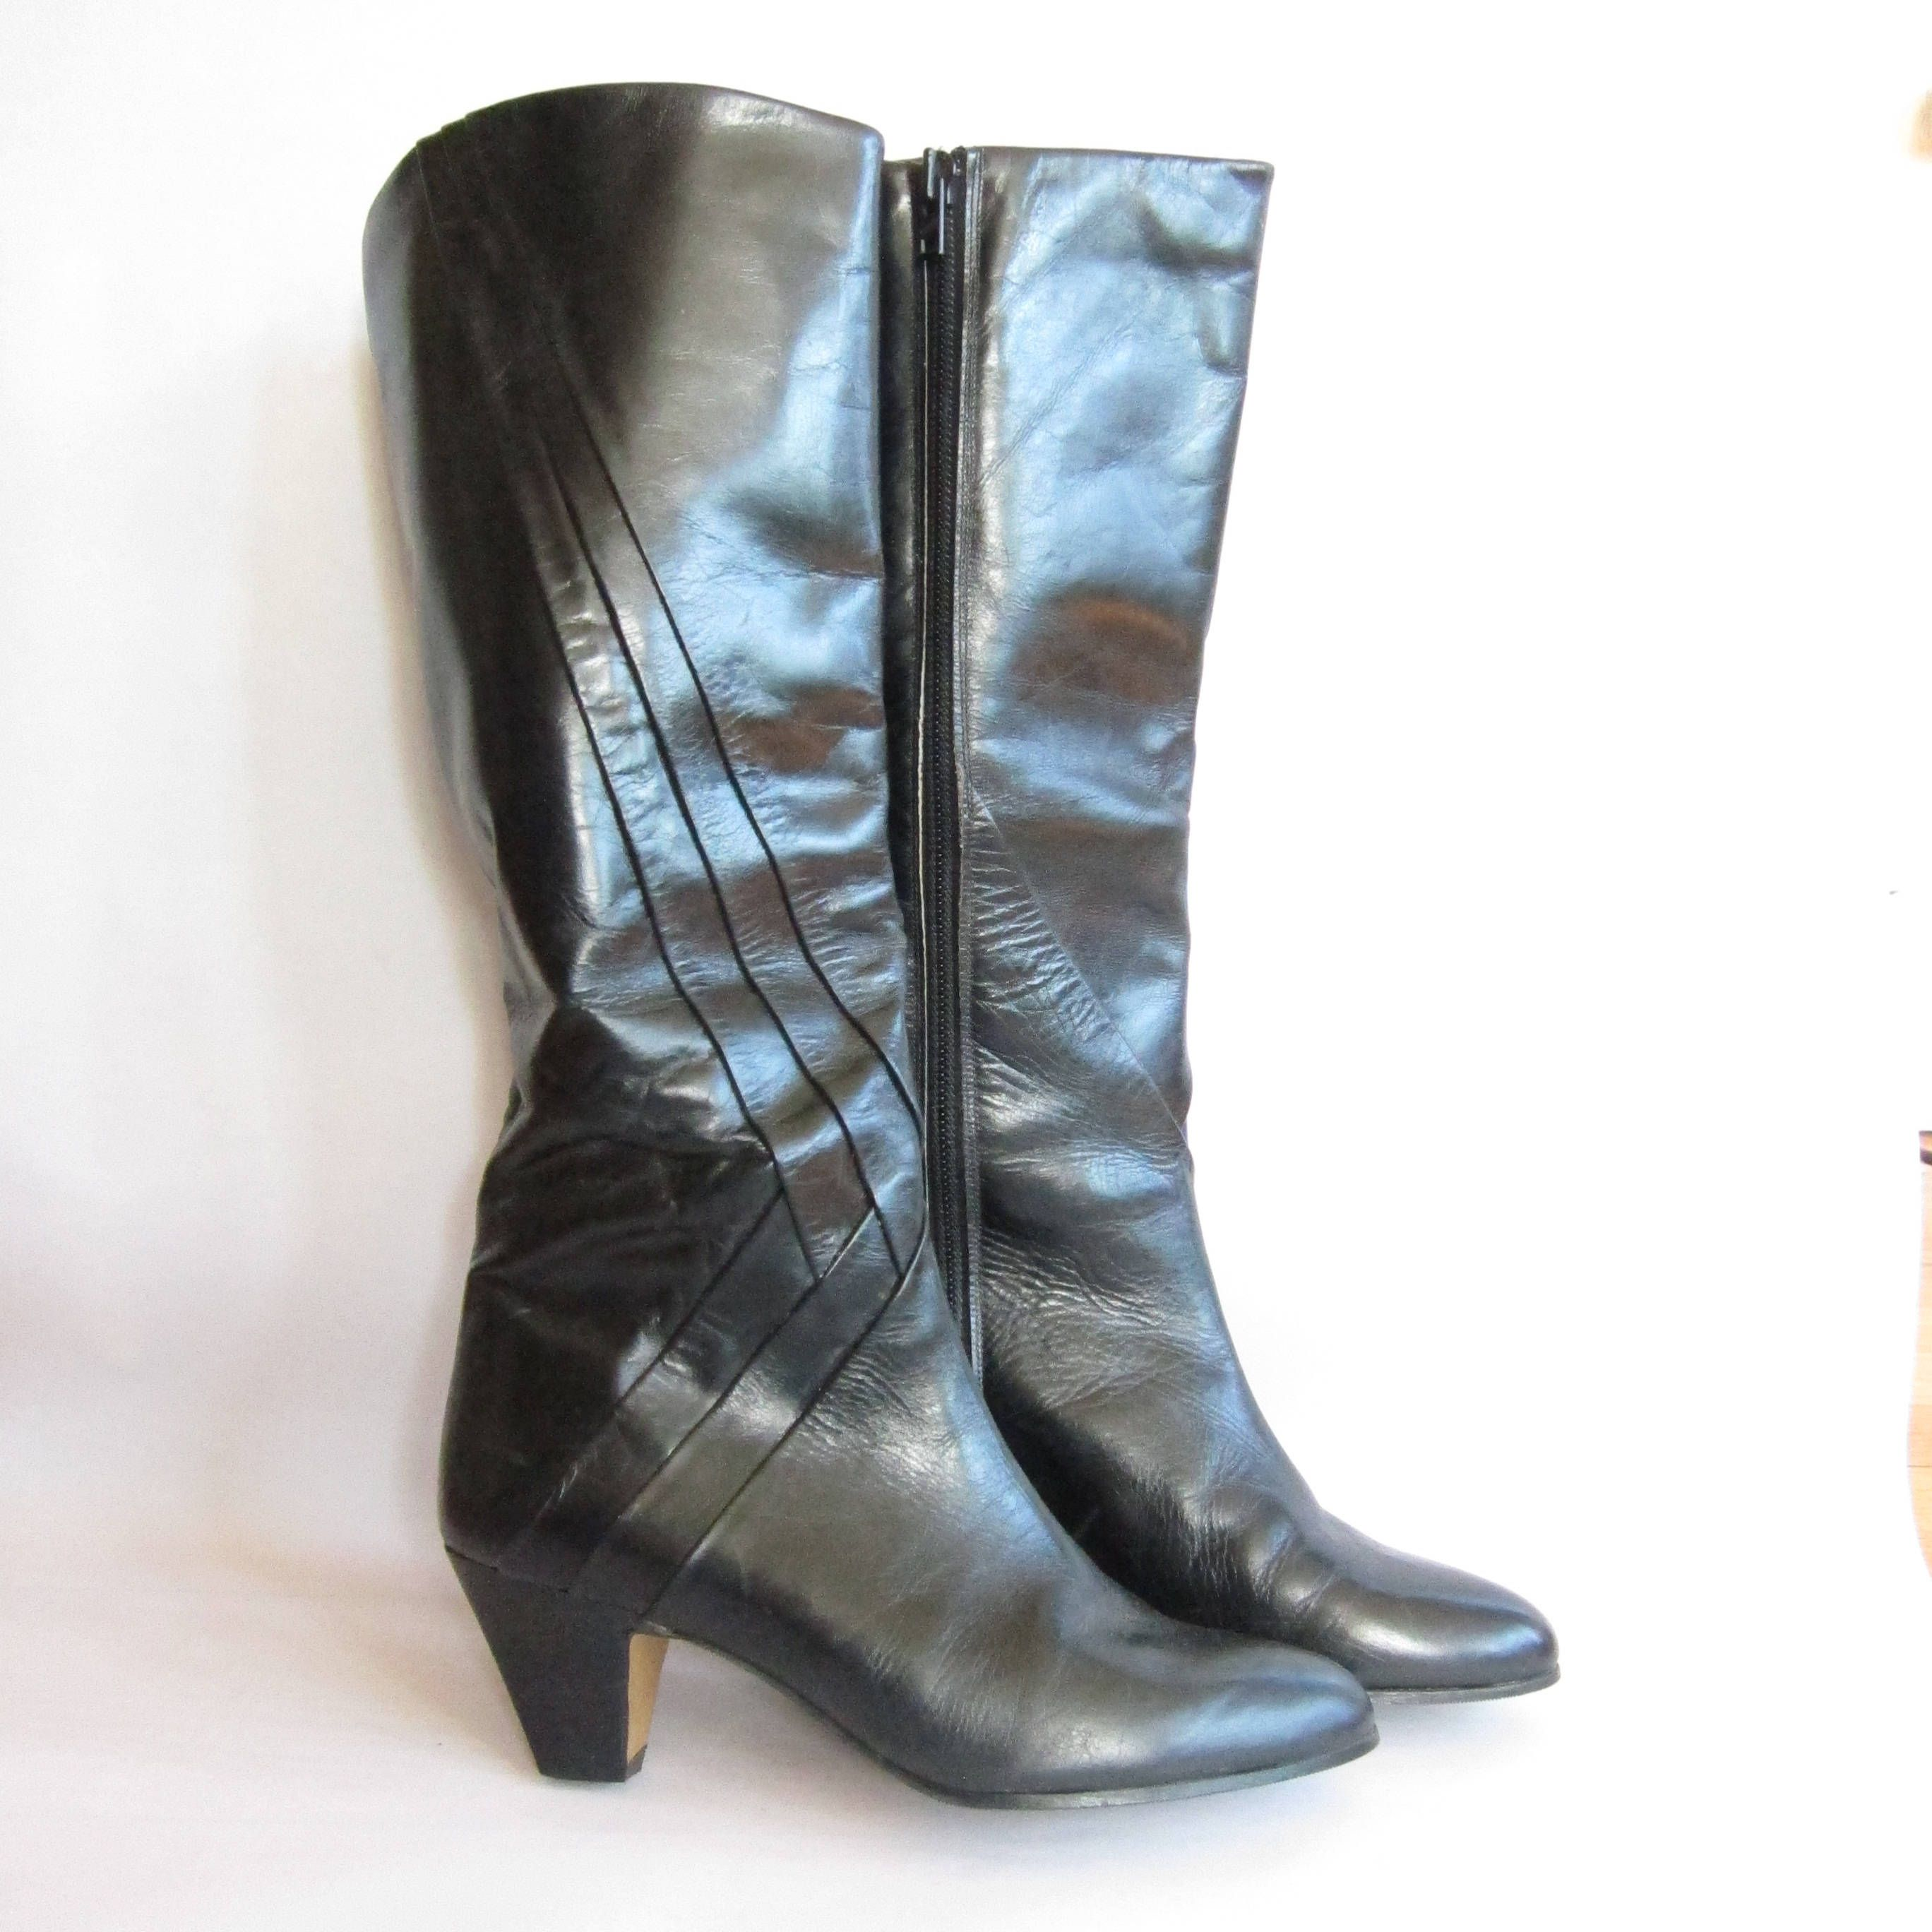 f593f4499c49 Vintage 1980s Black Leather Boots with Pleated Stripes / 80s High Heel Boots  Vaneli Made in Spain Size 6.5 by BasyaBerkman on Etsy